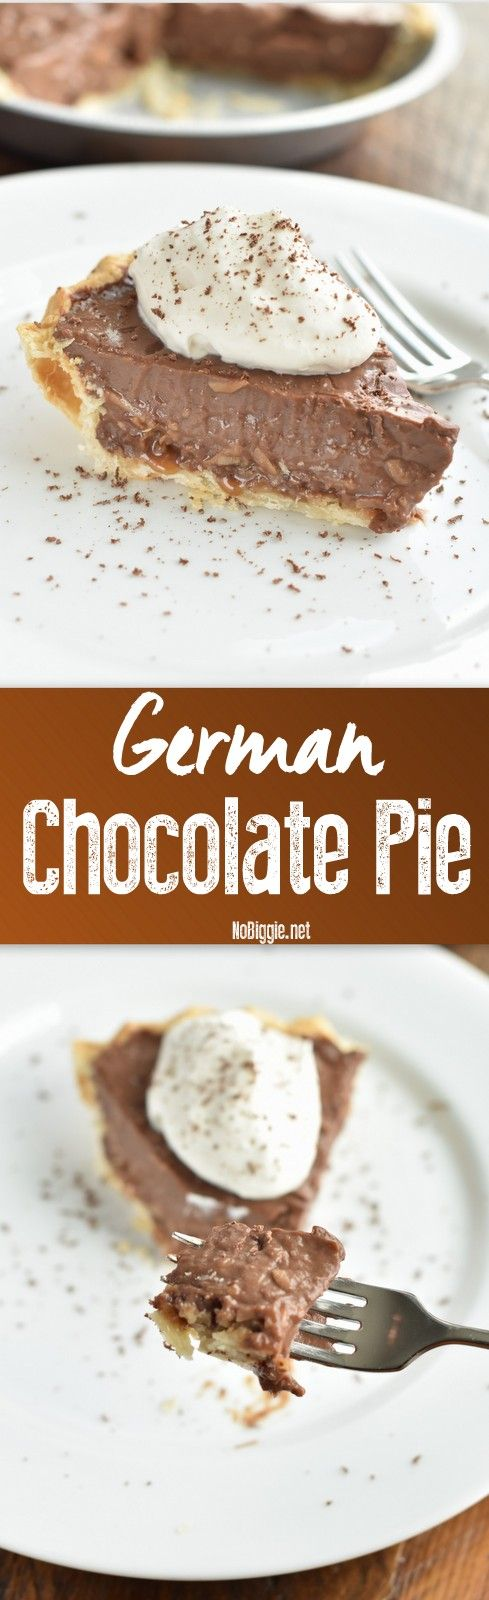 German Chocolate Pie | NoBiggie.net